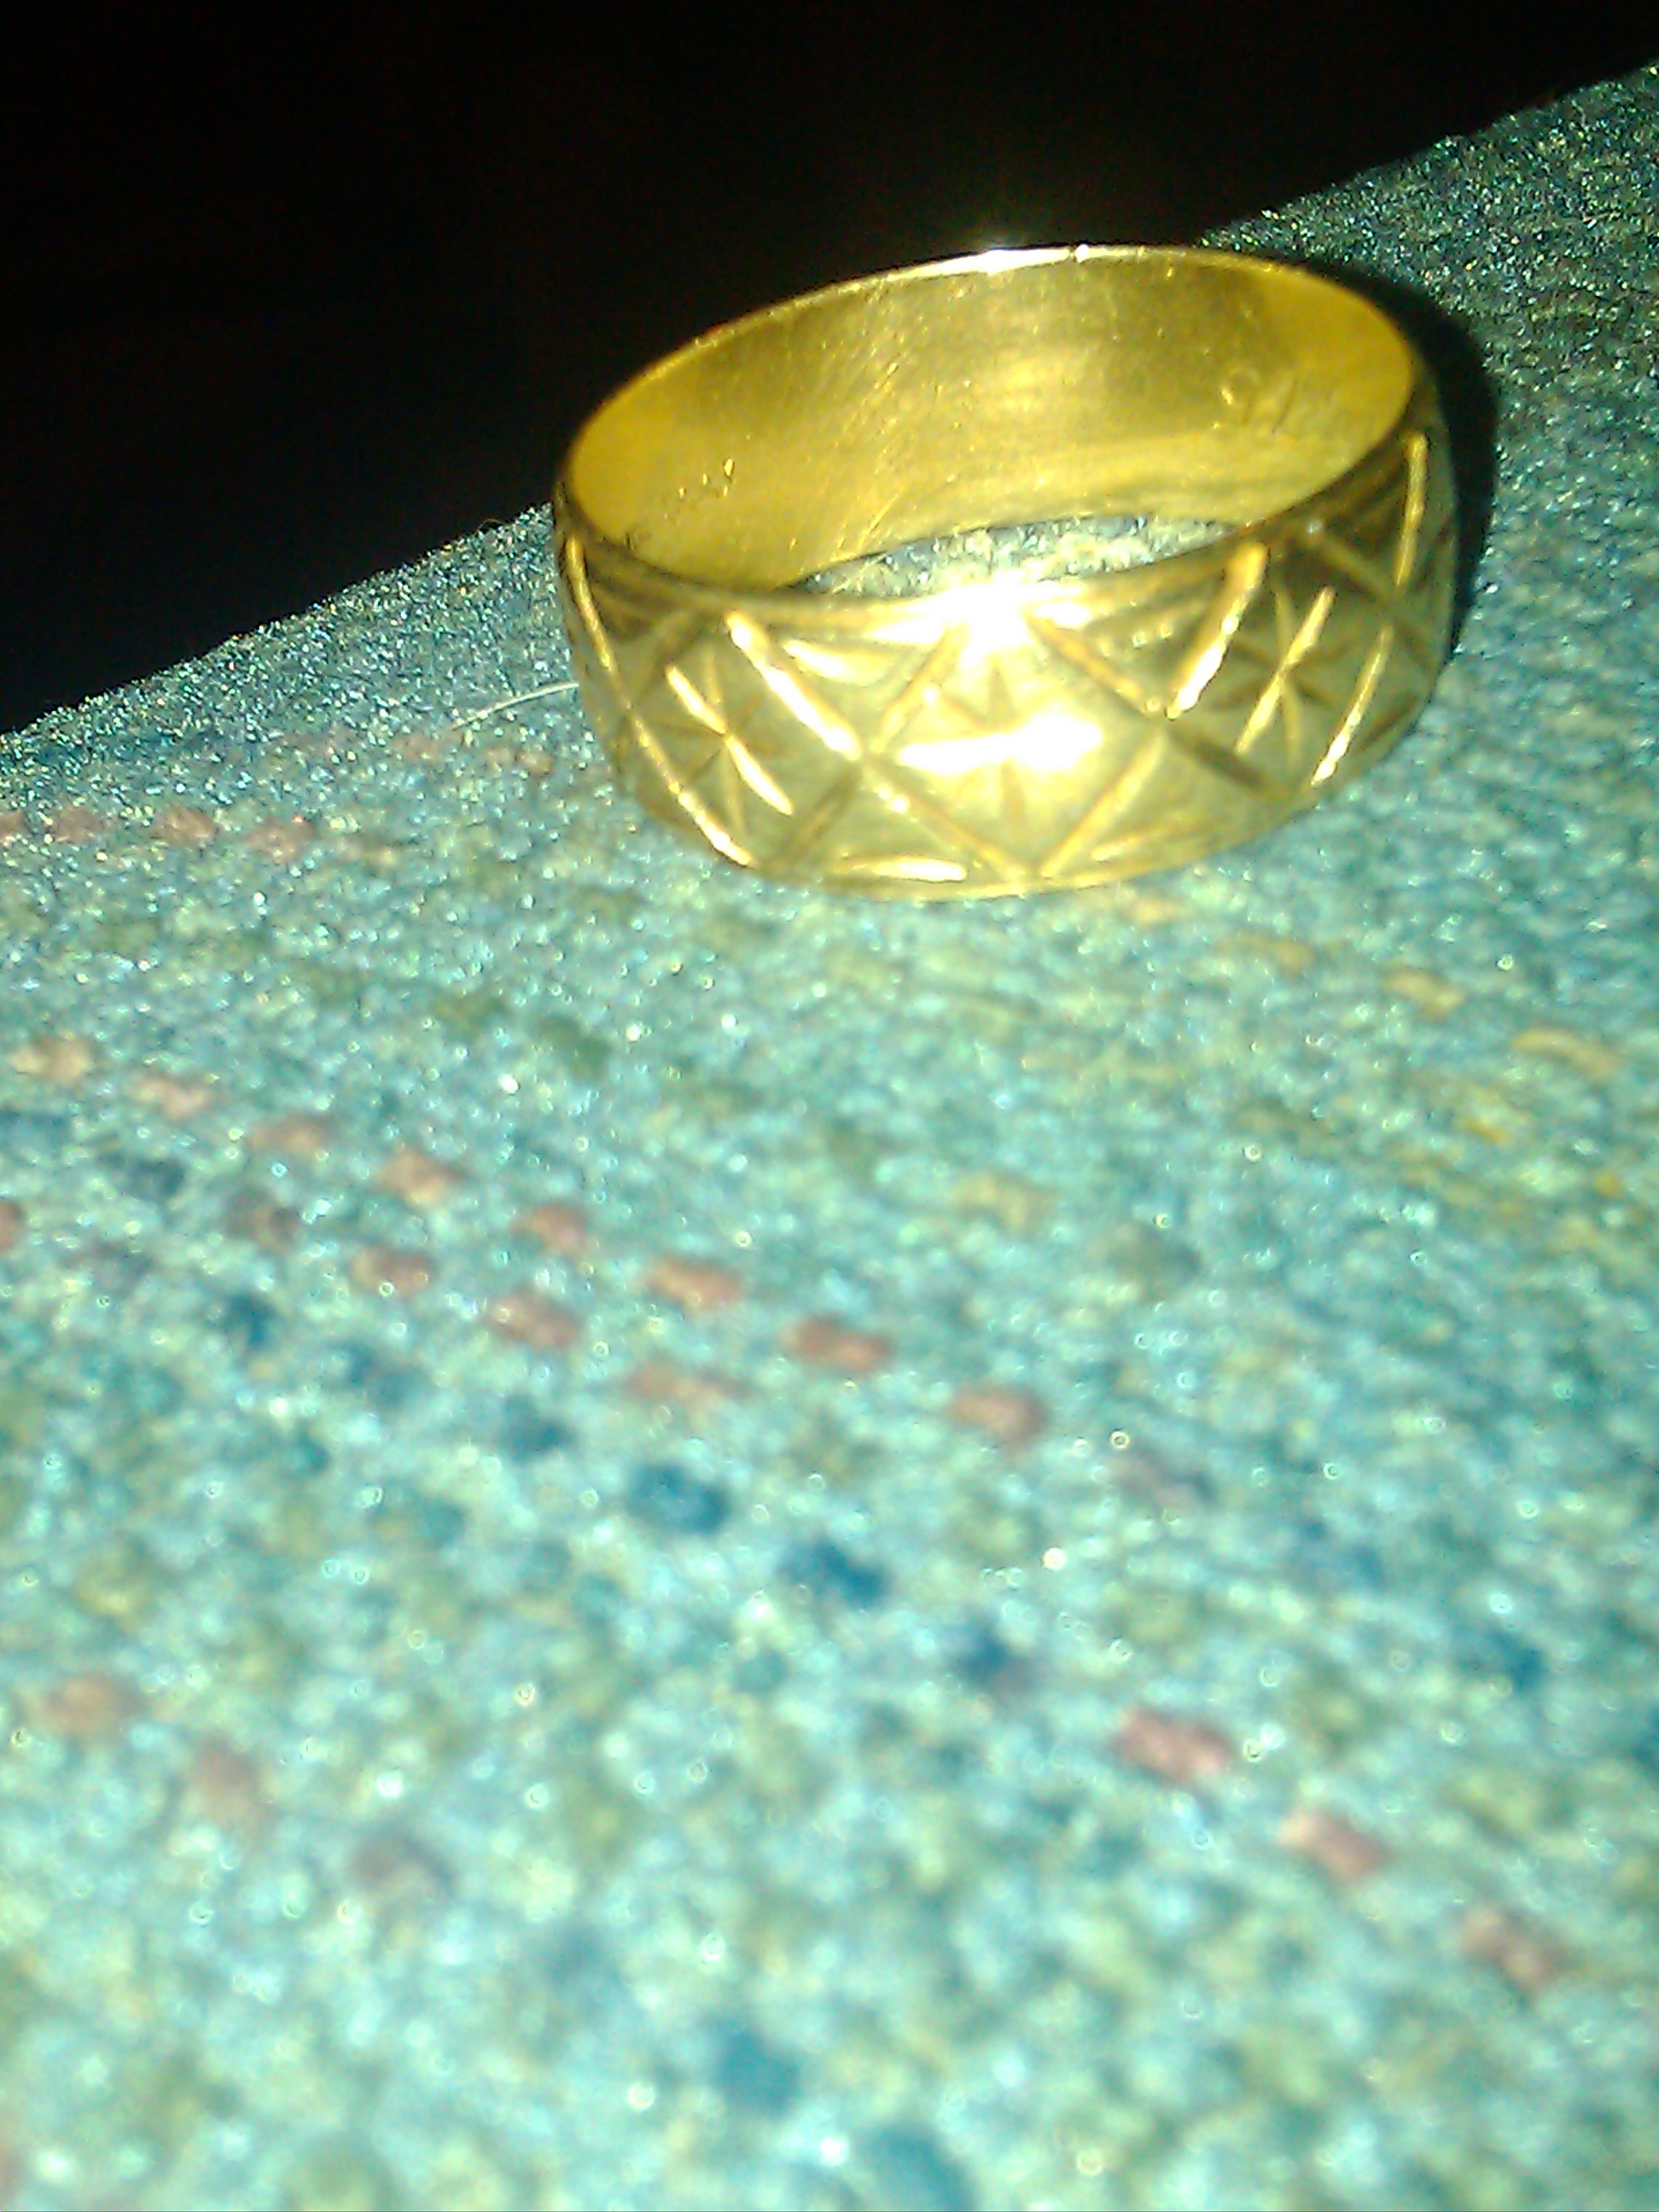 Forever 21 Return Policy Without Receipt Jpg Credit Card Receipts Pdf with Kfc Receipt Word Its A Ten Karot Gold Ring It Has Dimoned Shapes With Stars On The Out Side  Of The Ring And On The Inside It Has Johnfreda June  And It Has Three   Commercial Invoice For Fedex Pdf